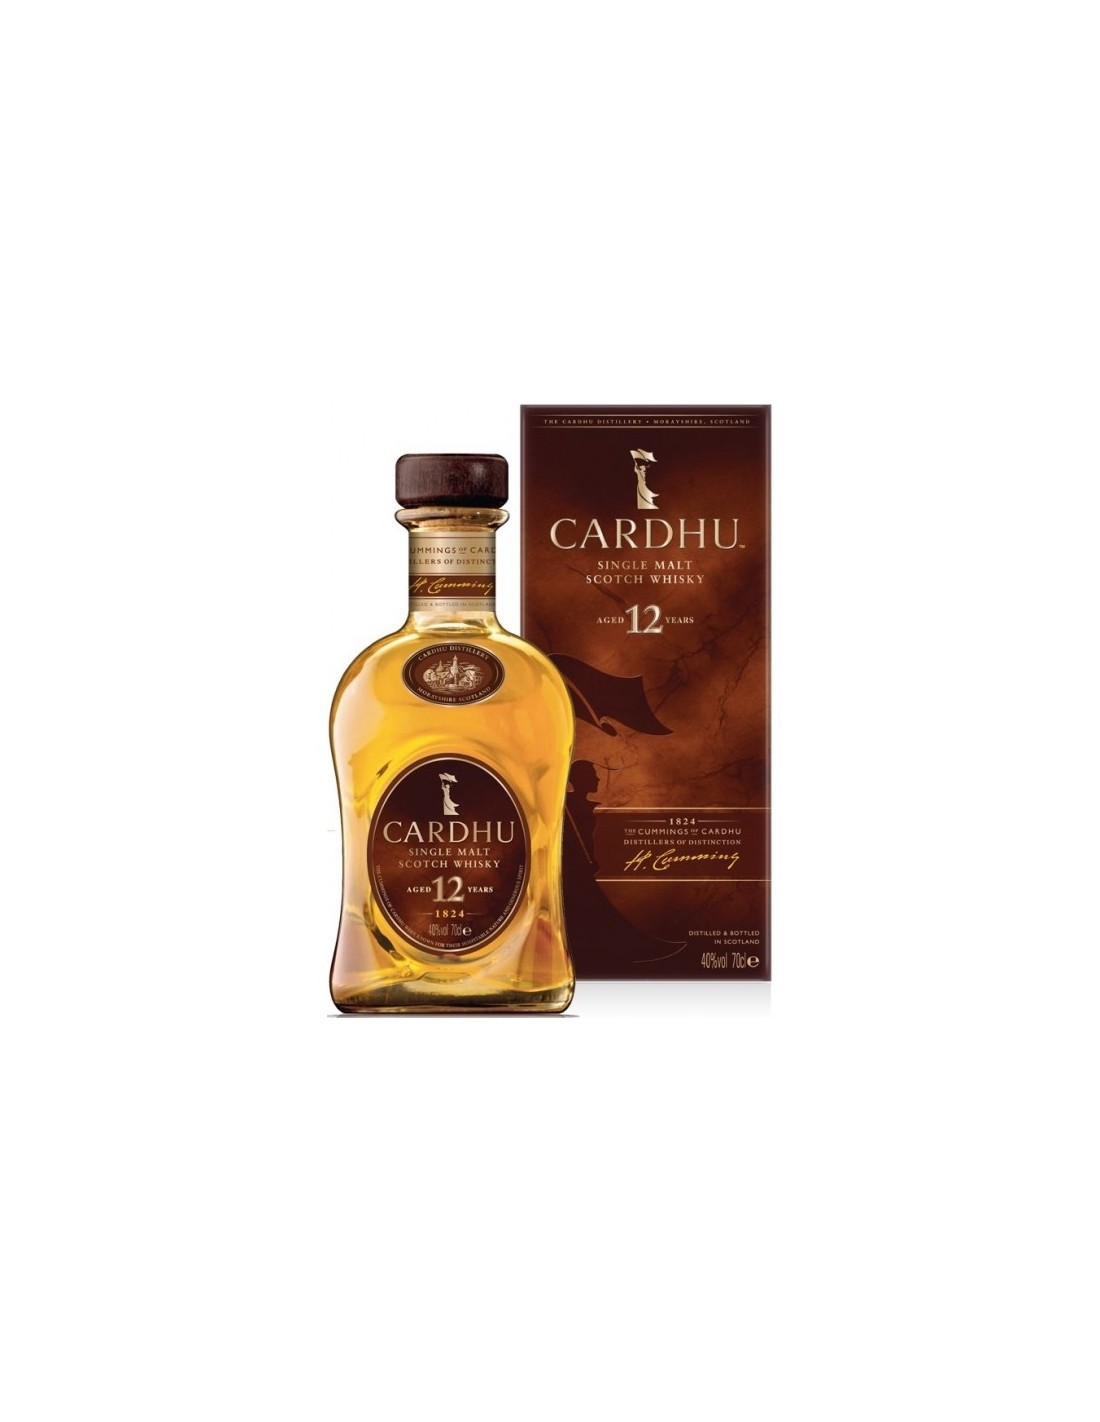 Whisky Single Malt Cardhu, 12 ani, 40% alc., 0.7L, Scotia